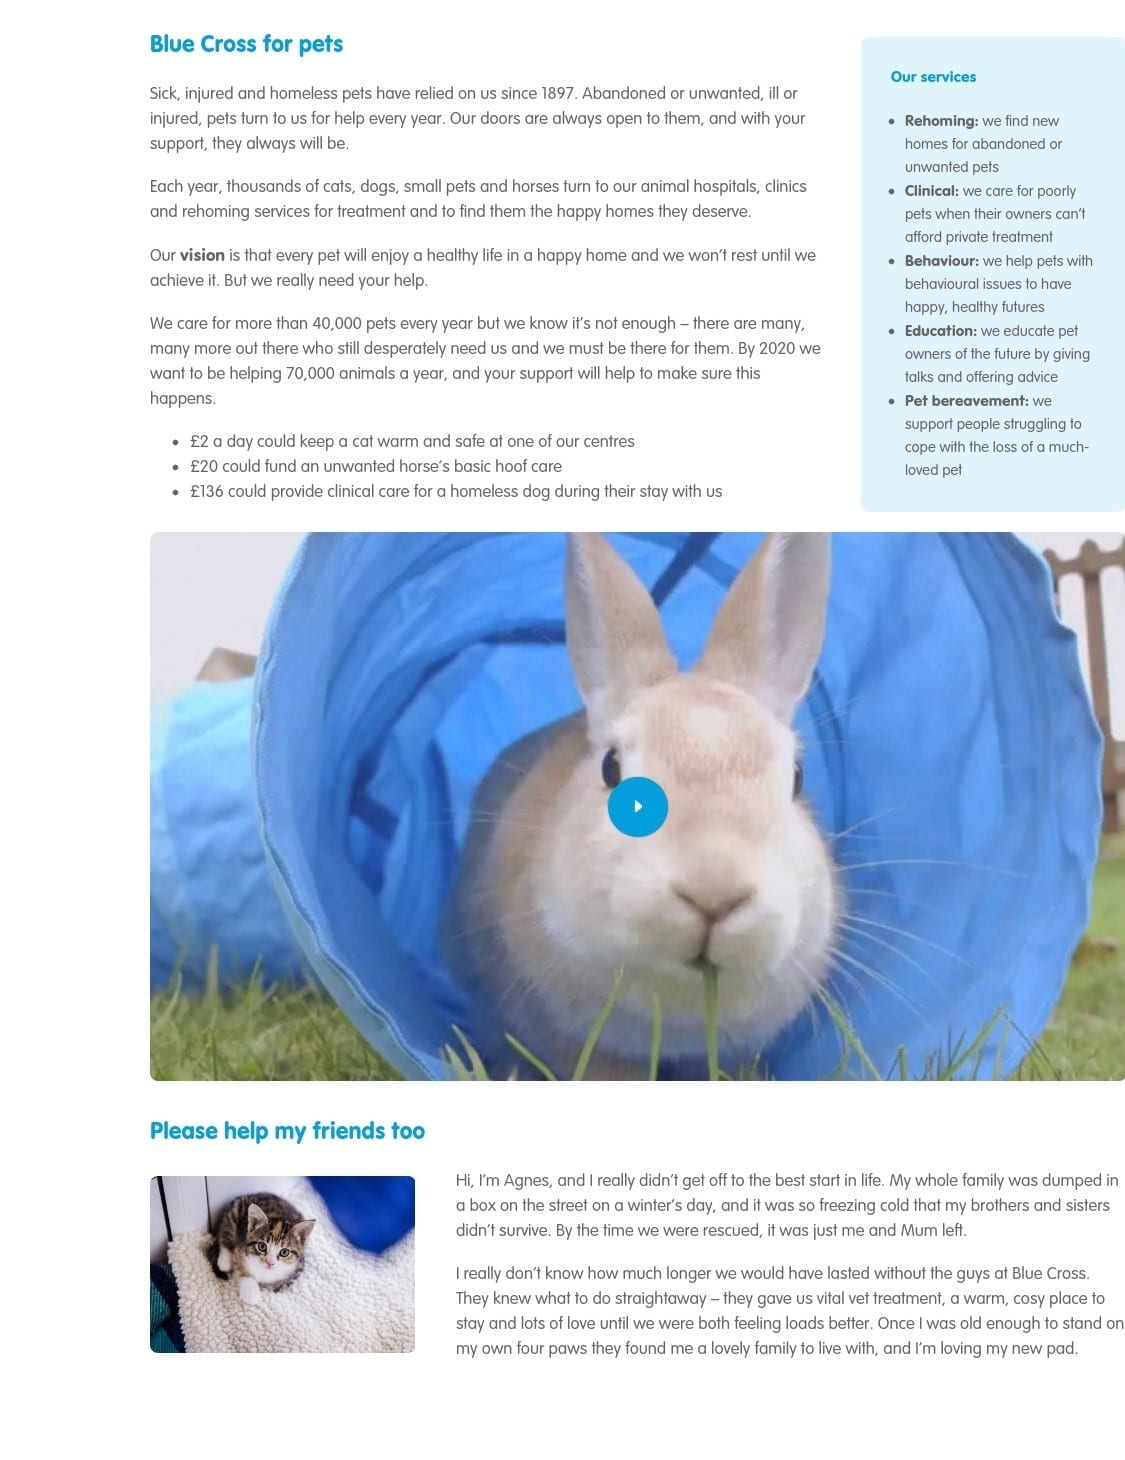 Blue Cross About Us page